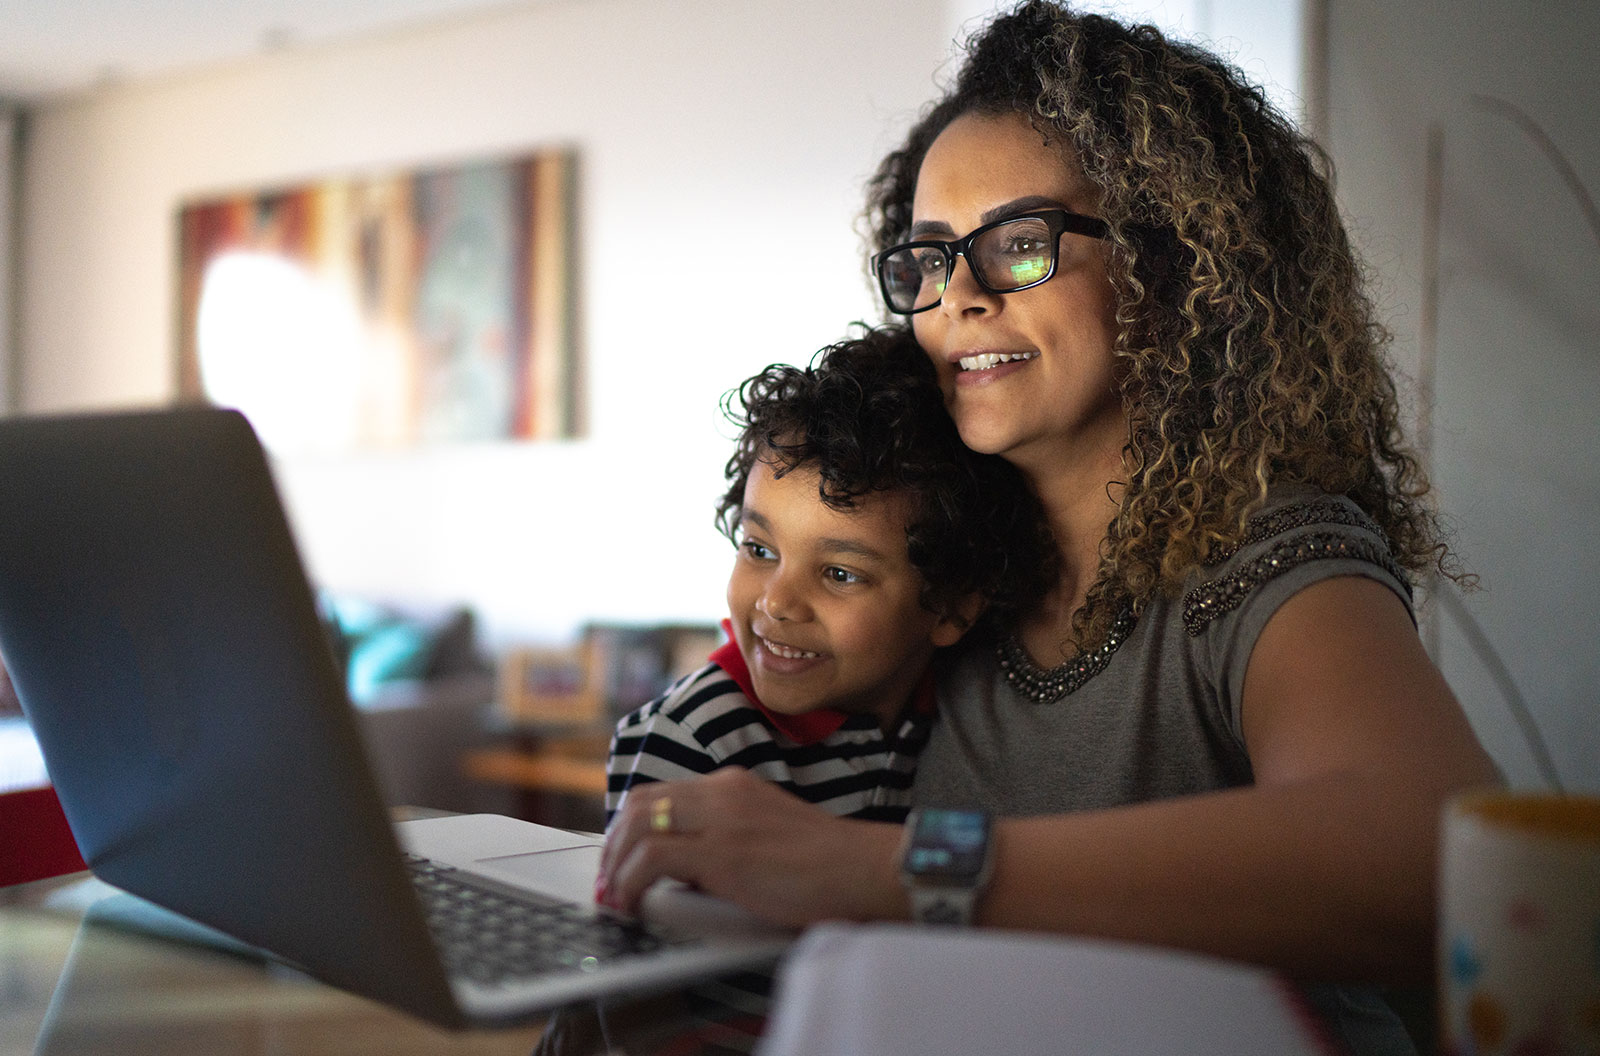 Curly-haired woman working on her laptop at home with her son